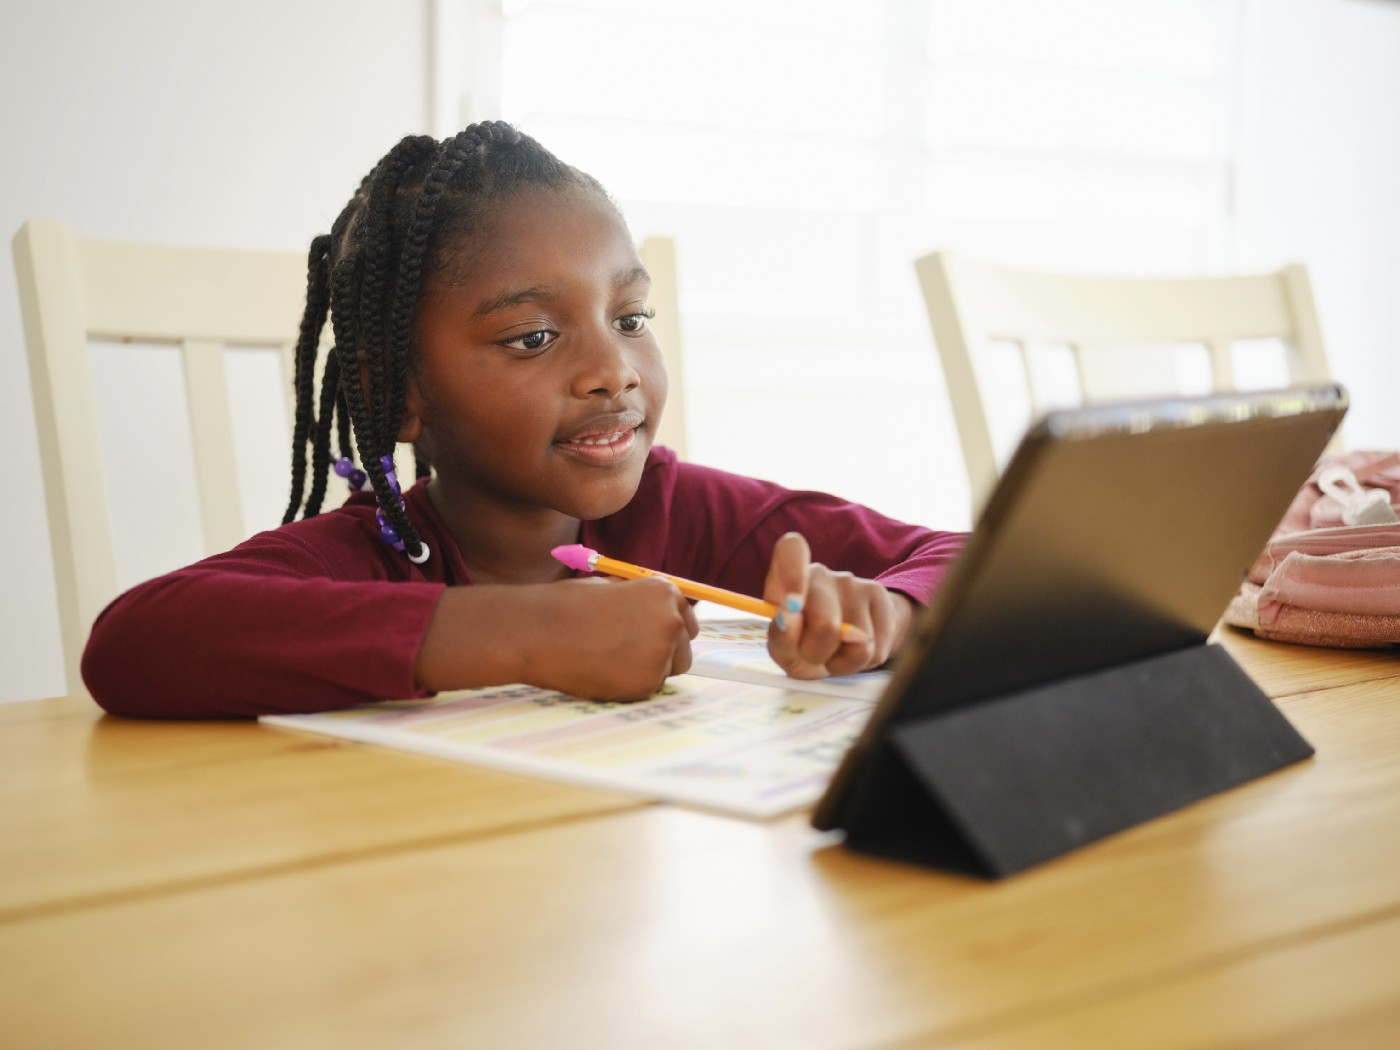 A young African American girl pays attention happily to her iPad tablet, learning remotely with a pencil in hand.